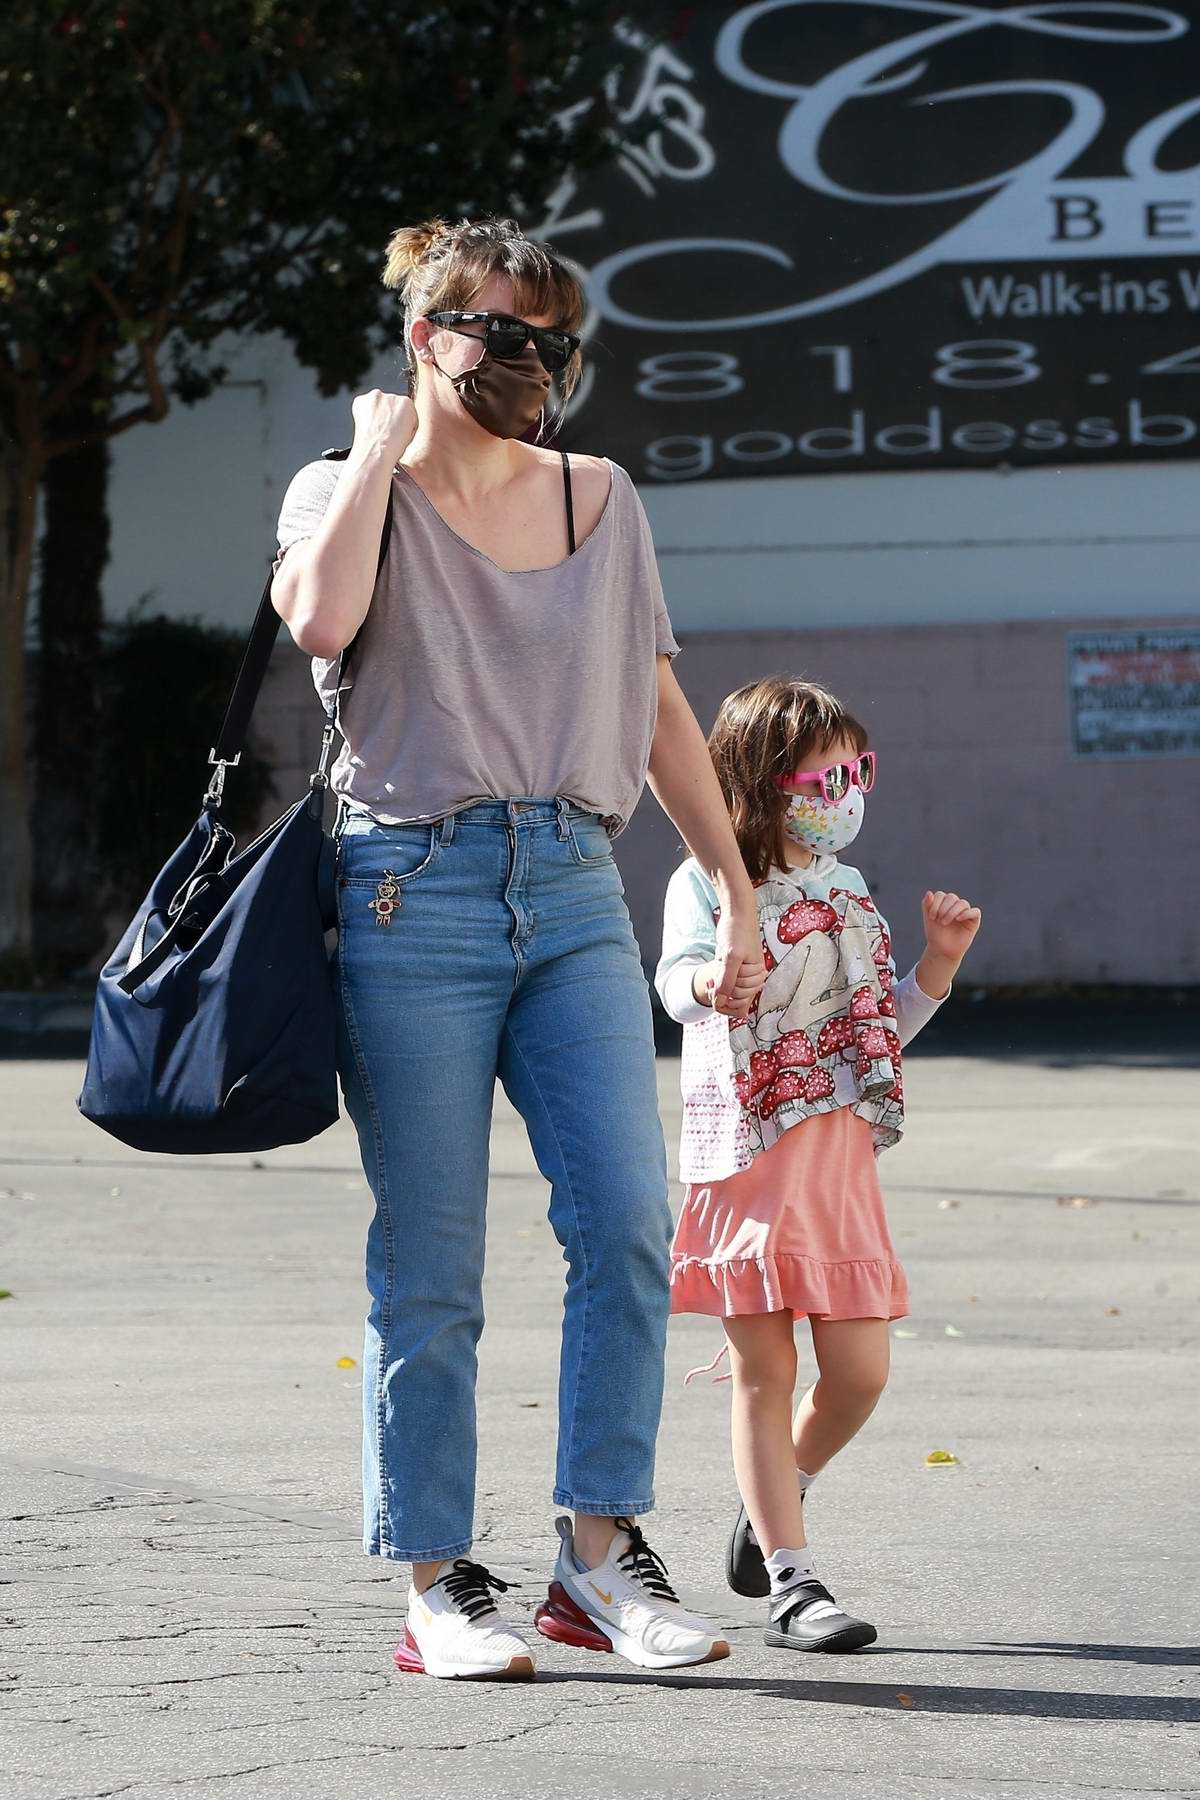 Milla Jovovich takes her daughter shopping at a Halloween store in Studio City, California